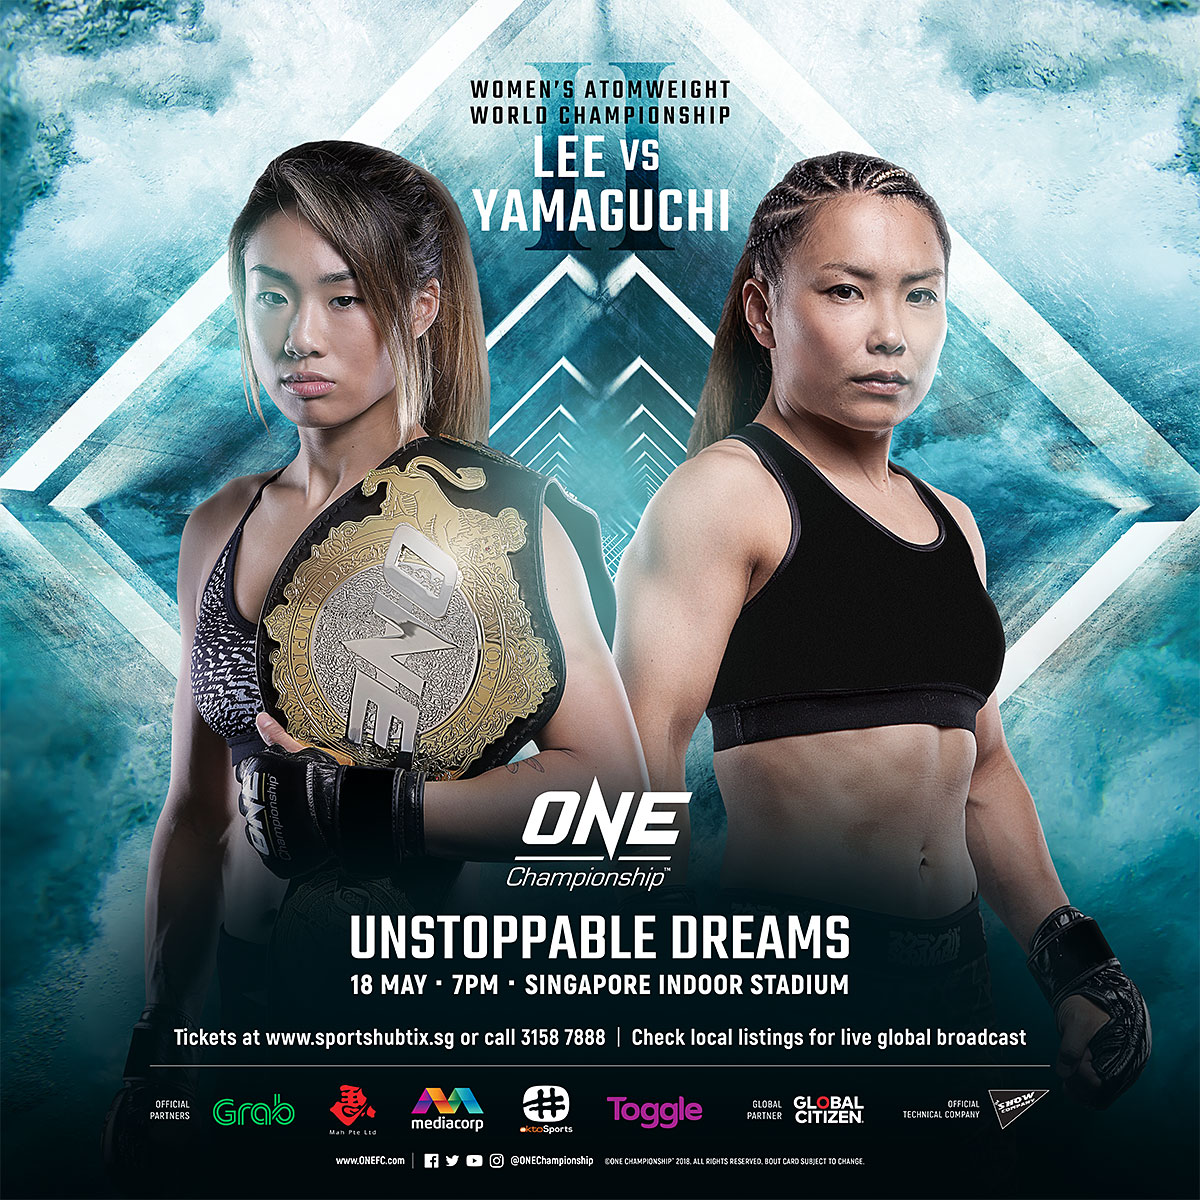 ONE WOMEN'S ATOMWEIGHT WORLD CHAMPION ANGELA LEE TO DEFEND TITLE AGAINST MEI YAMAGUCHI IN REMATCH